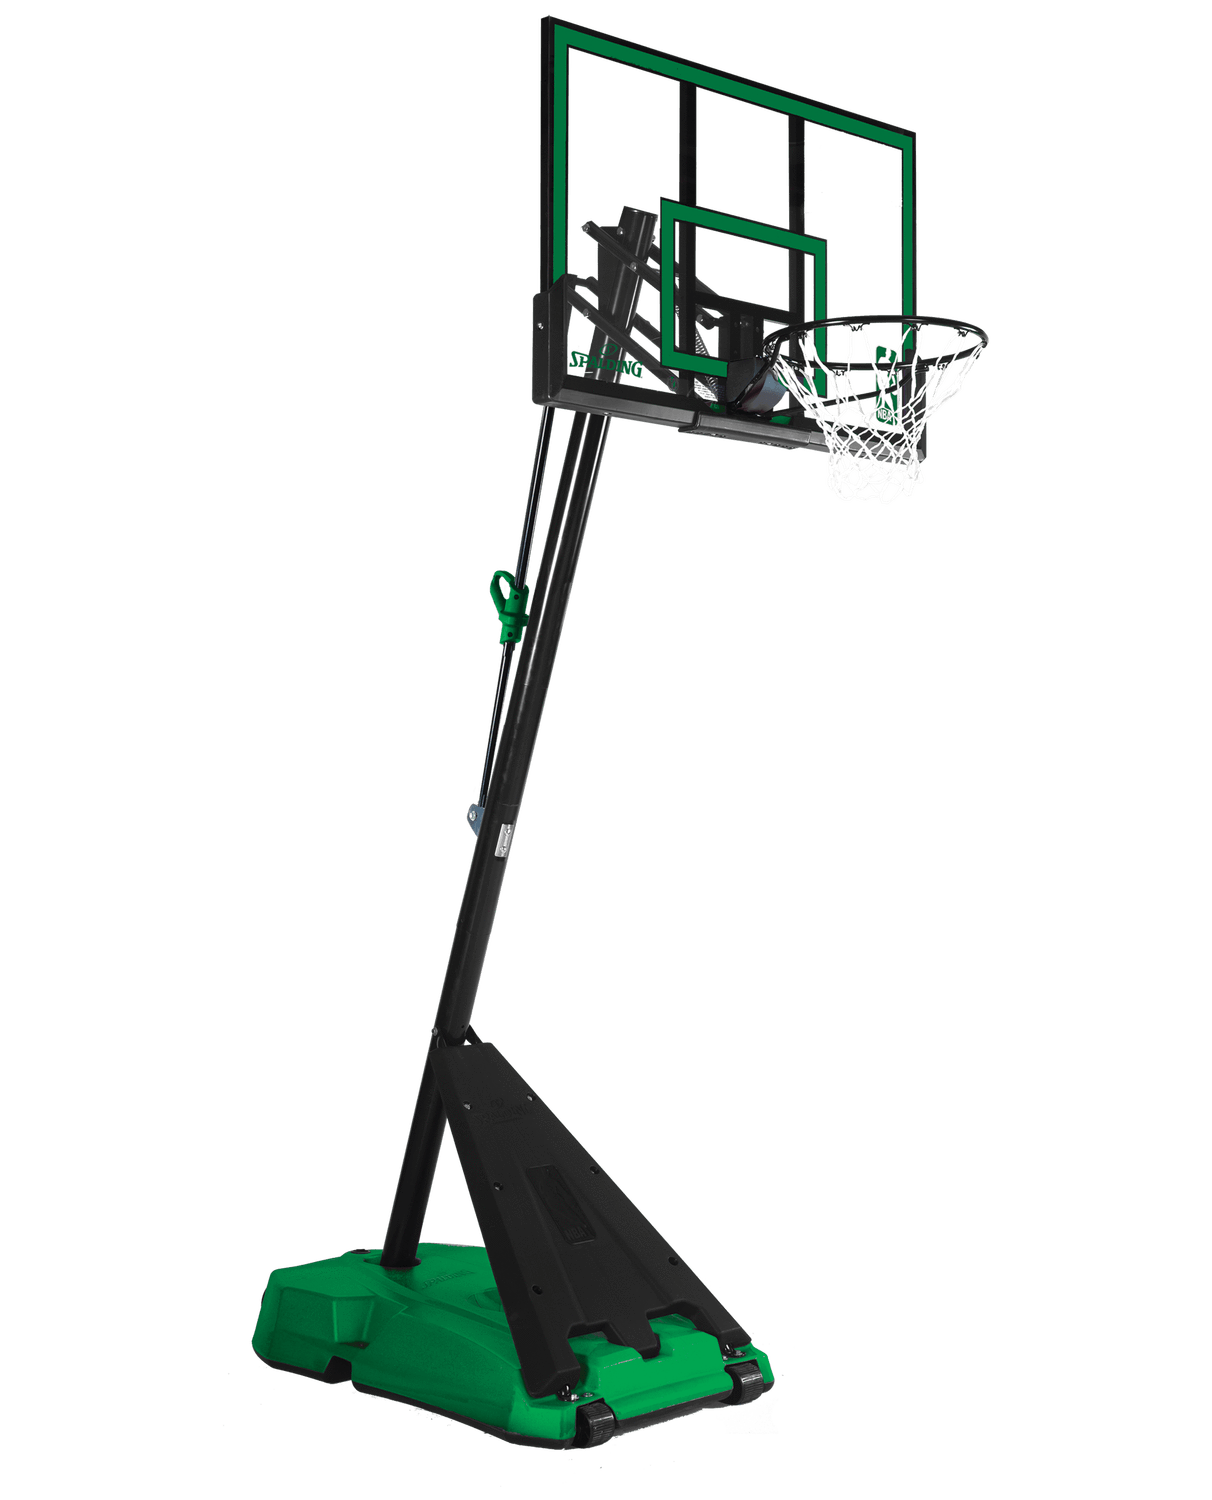 Spalding 52 Hercules Angled Pole Basketball Hoop Green Spalding Basketball Hoop Houston Basketball Basketball Floor